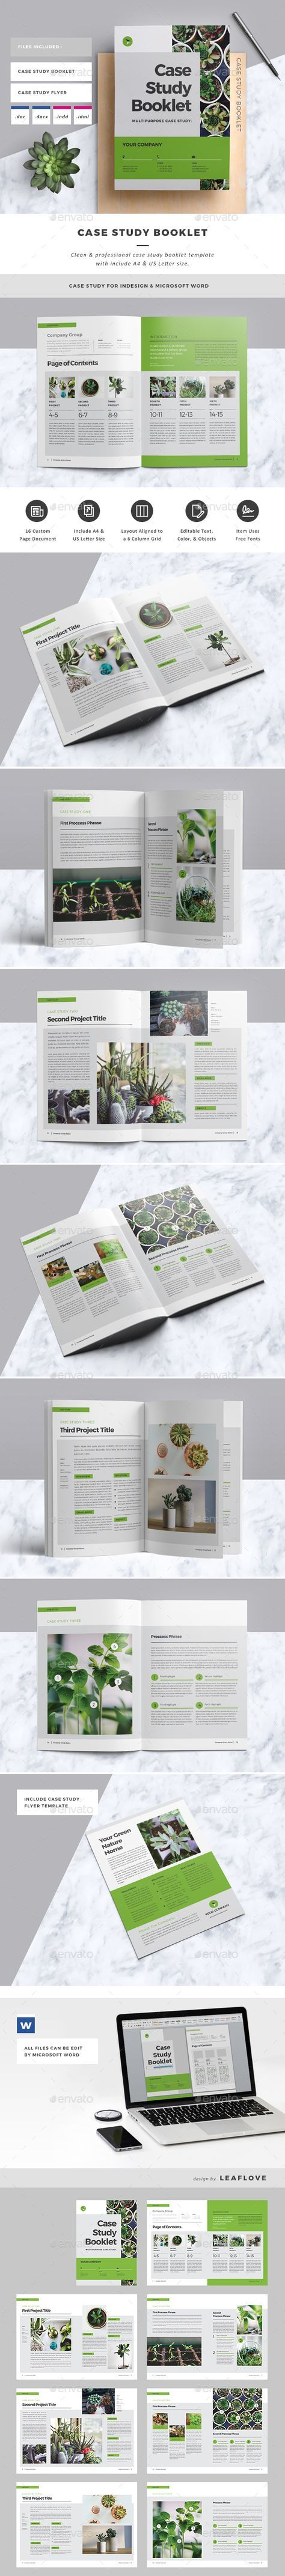 61 best Case Study Templates images on Pinterest | Page layout ...